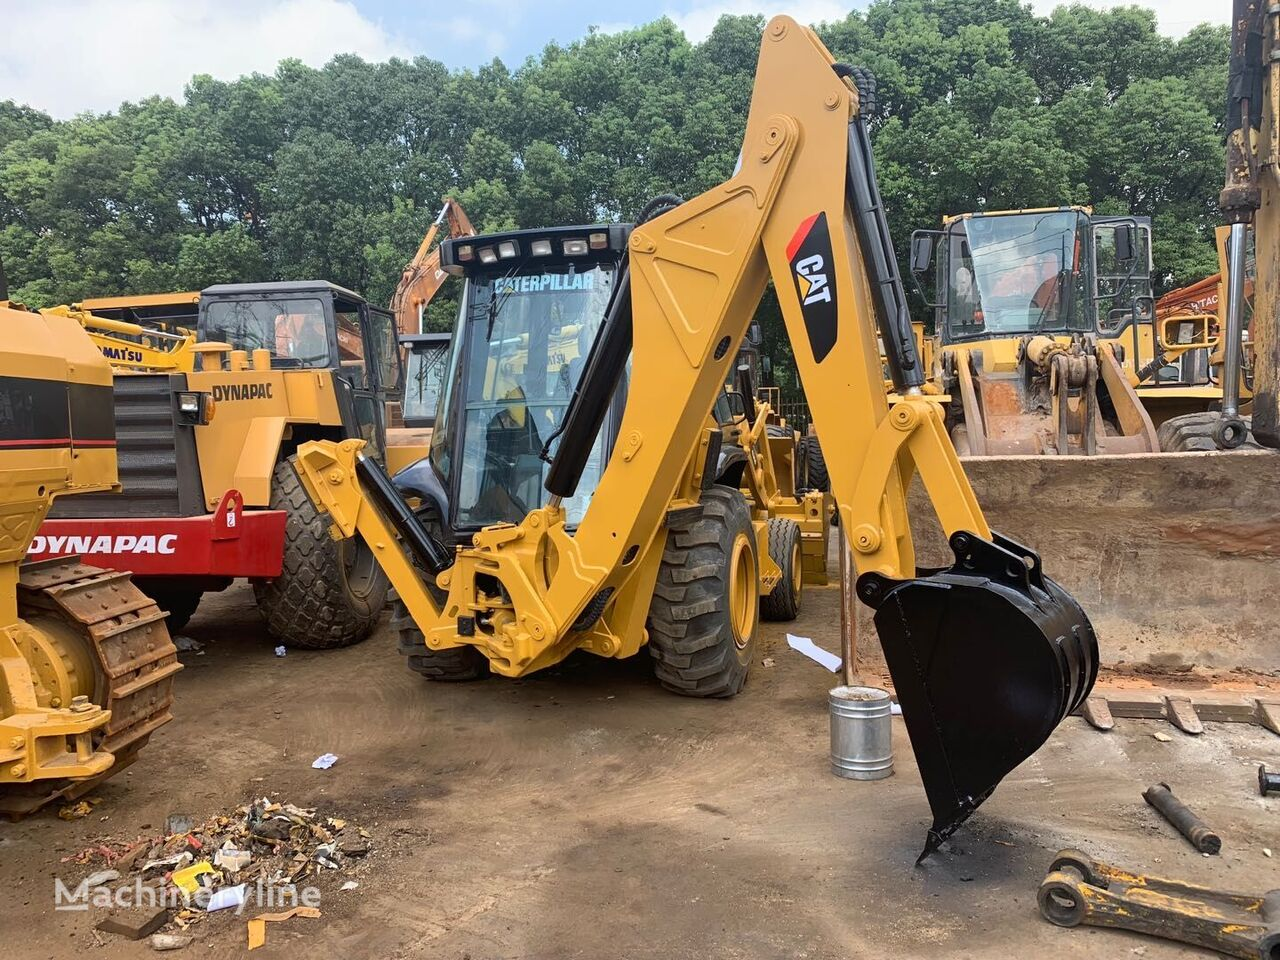 CATERPILLAR 430F backhoe loader